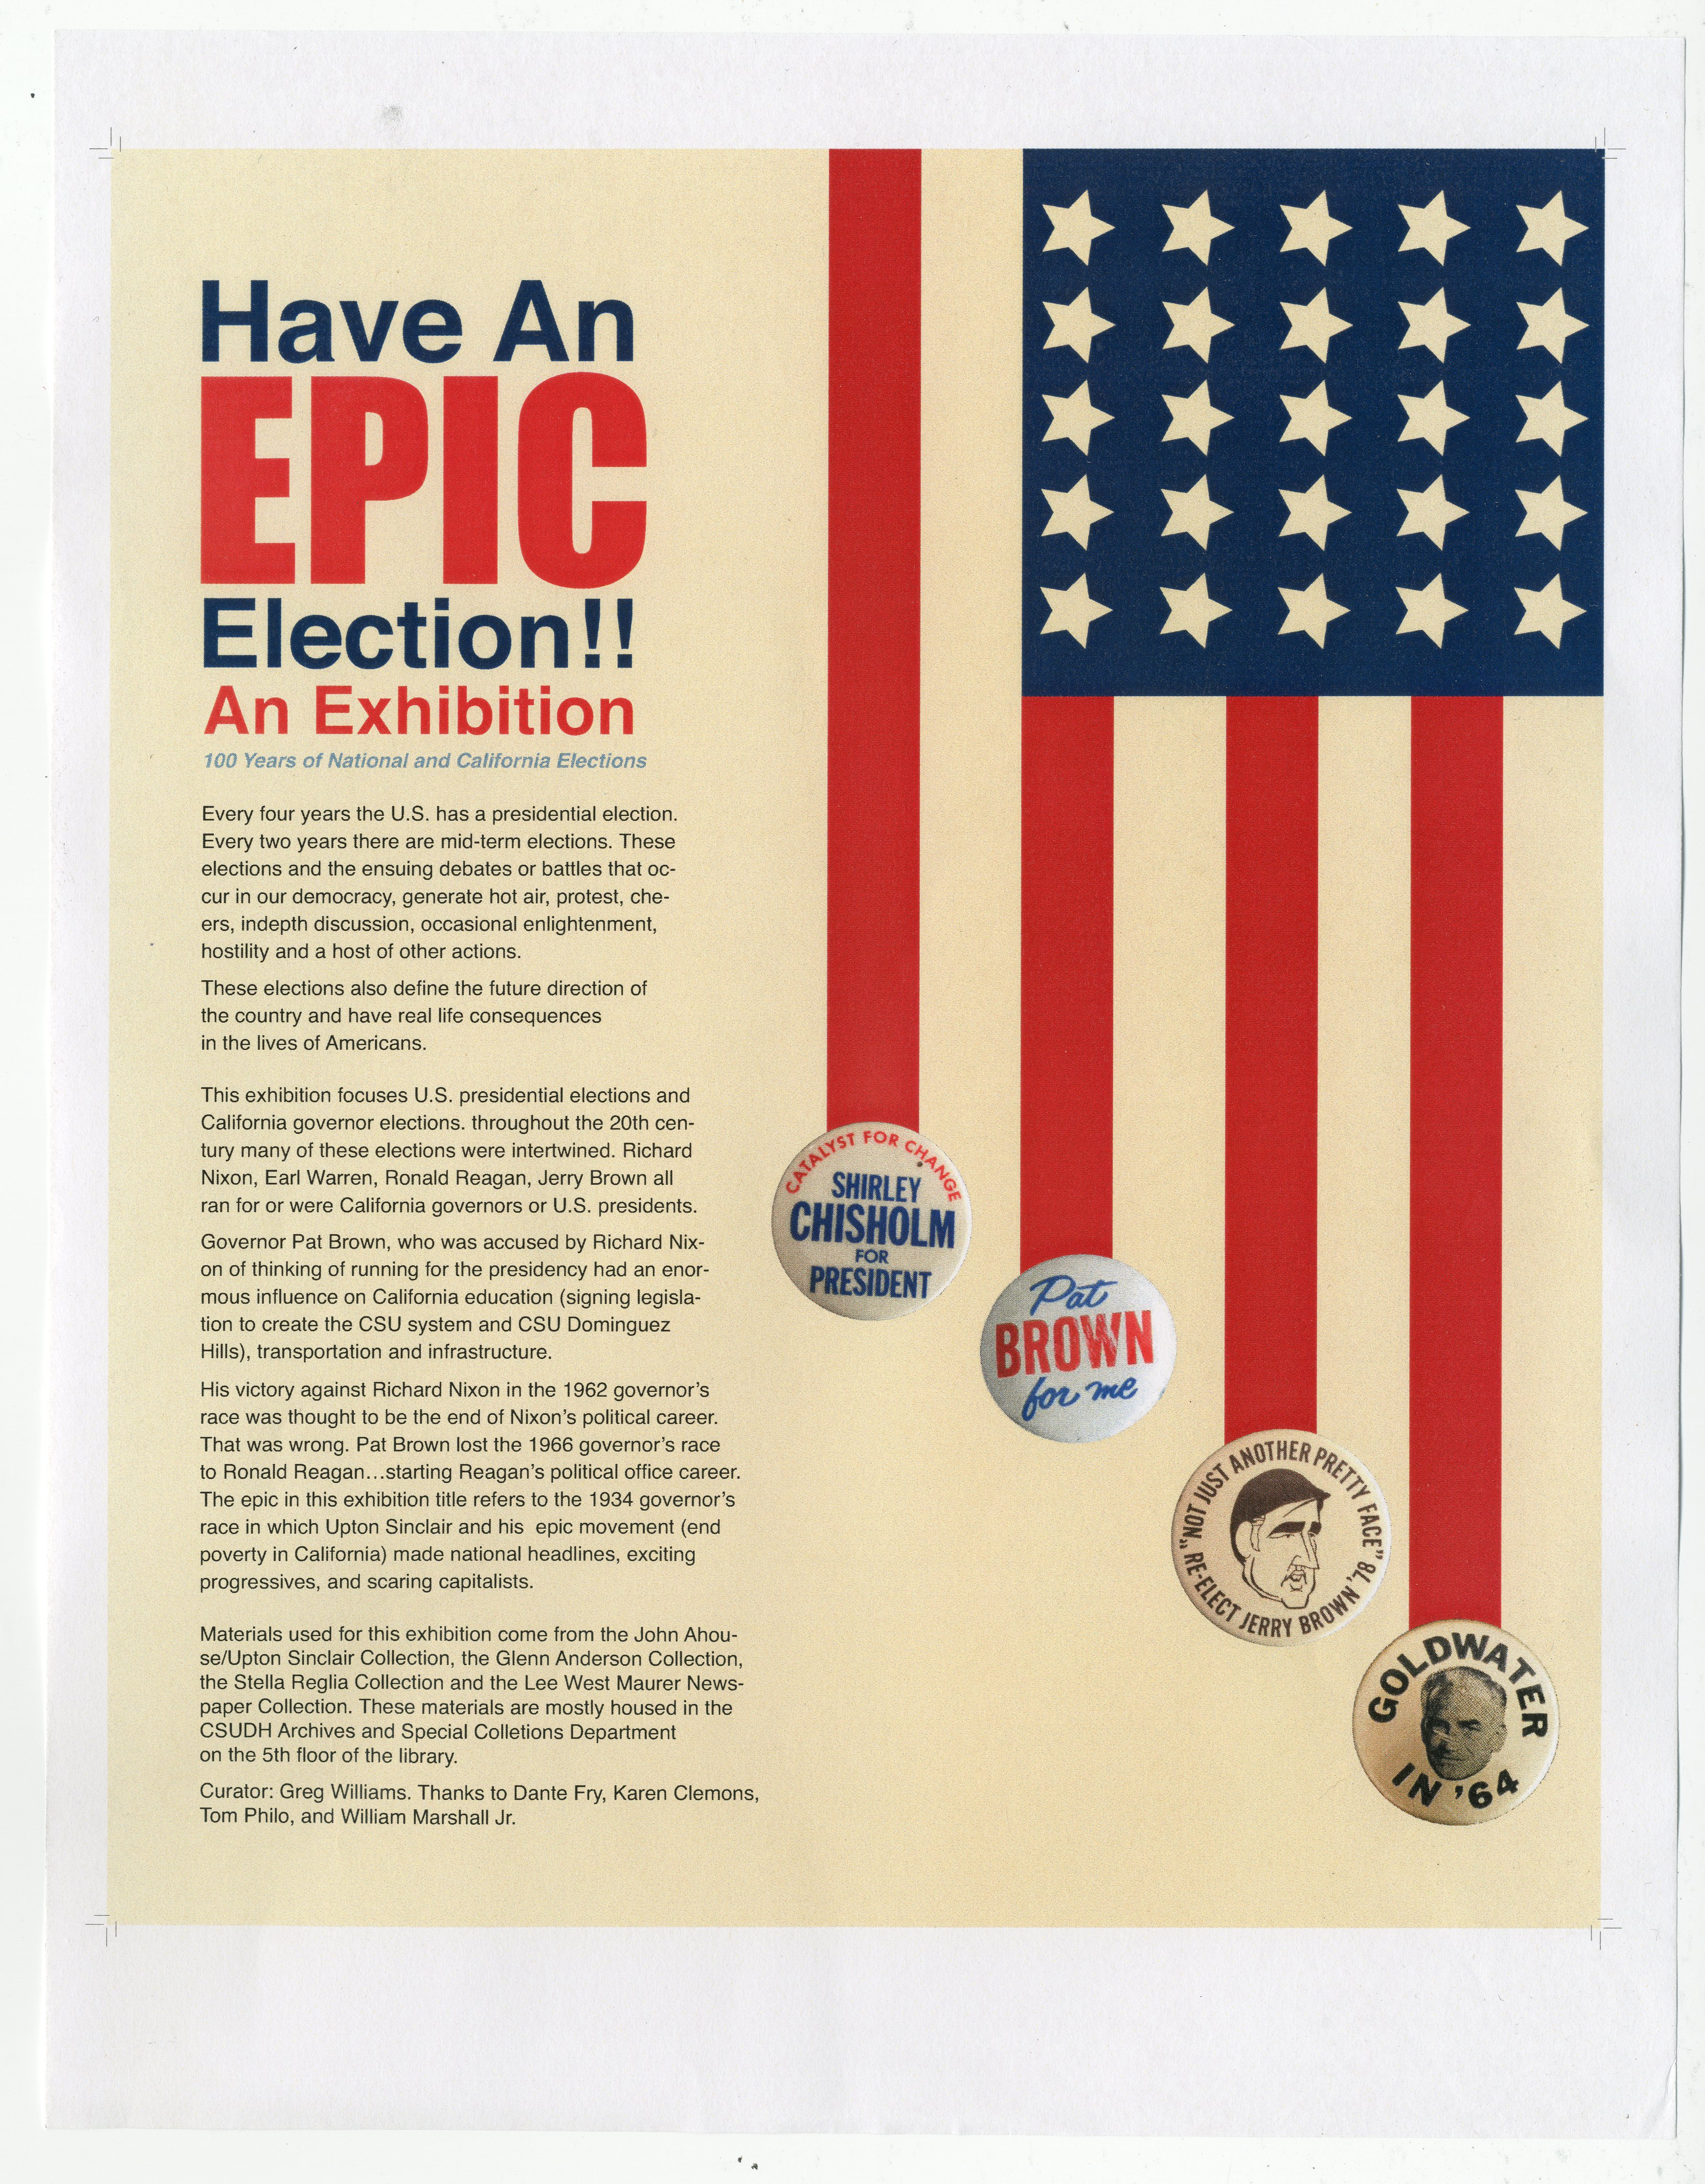 Have an EPIC Election exhibition introduction poster